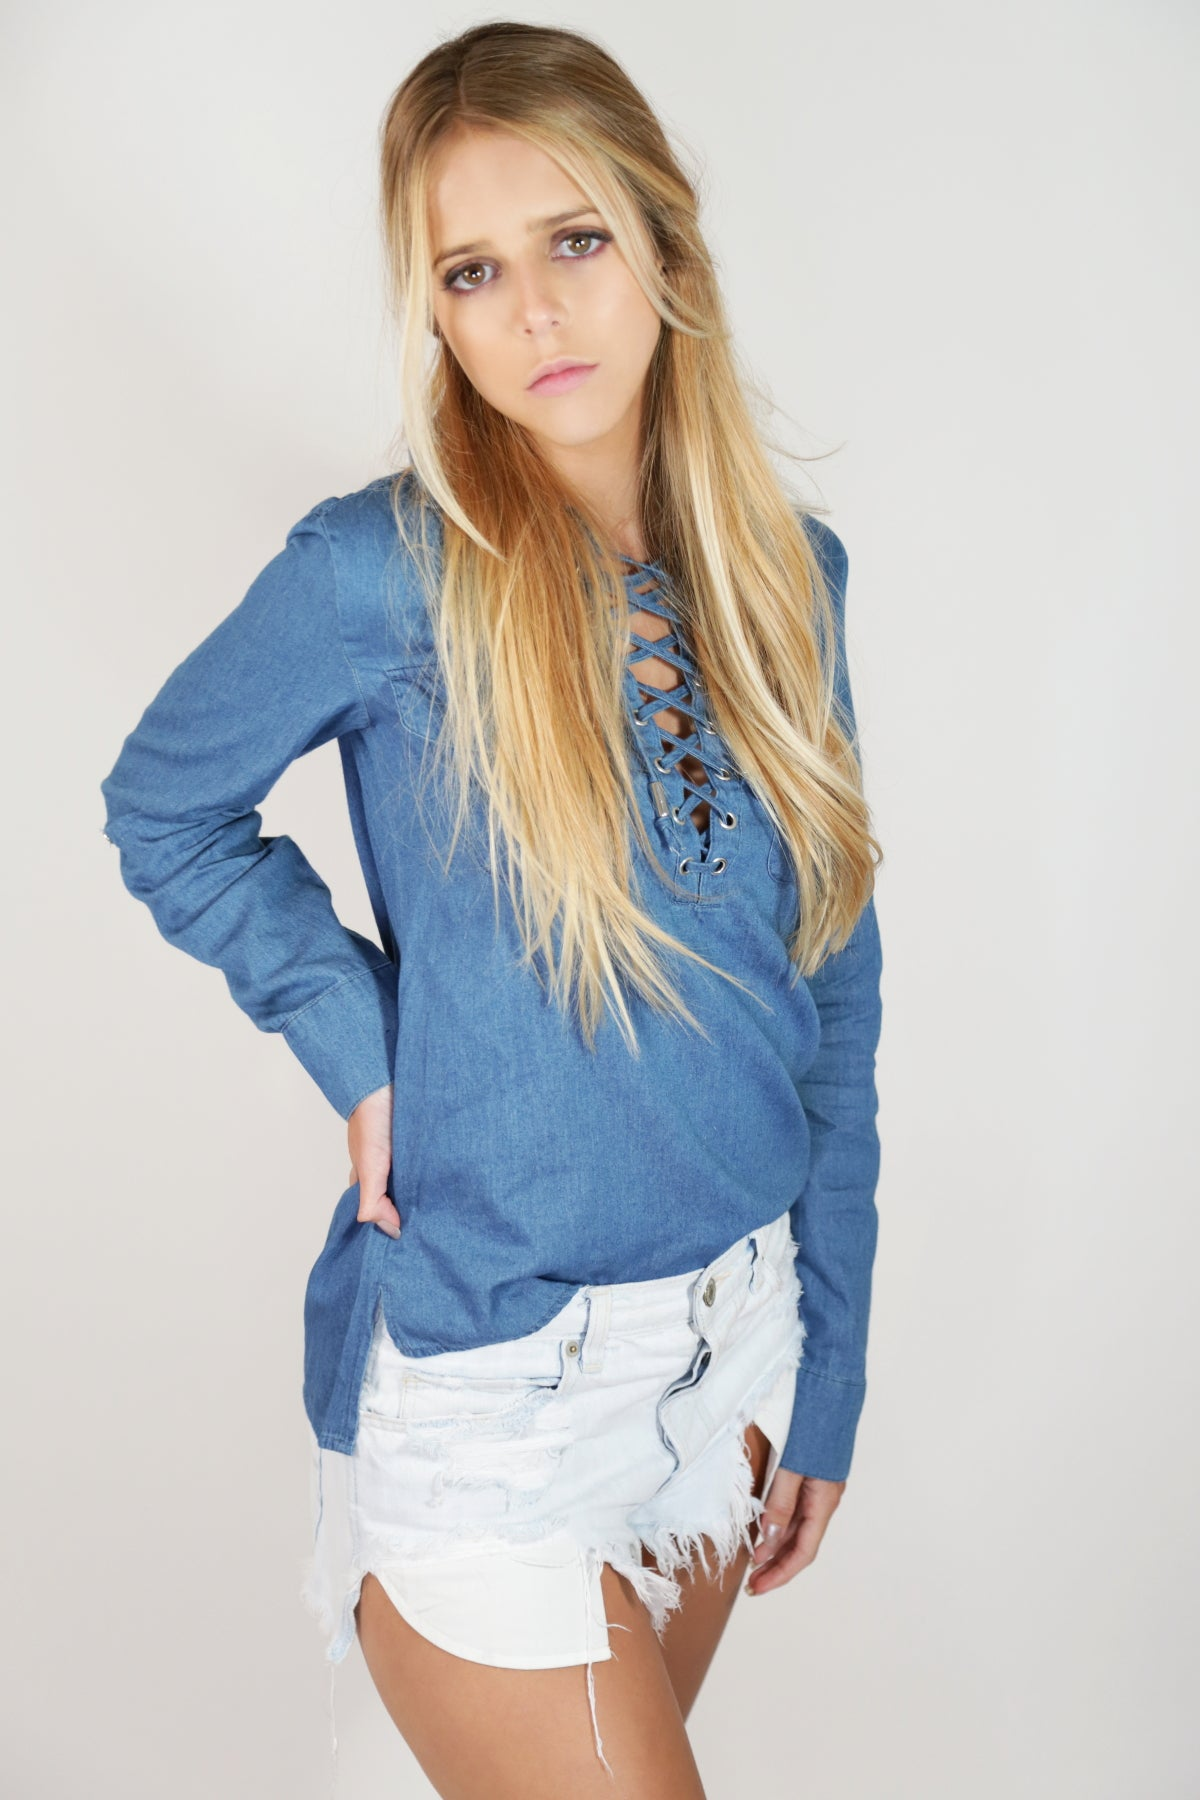 Lace Up Denim Shirt